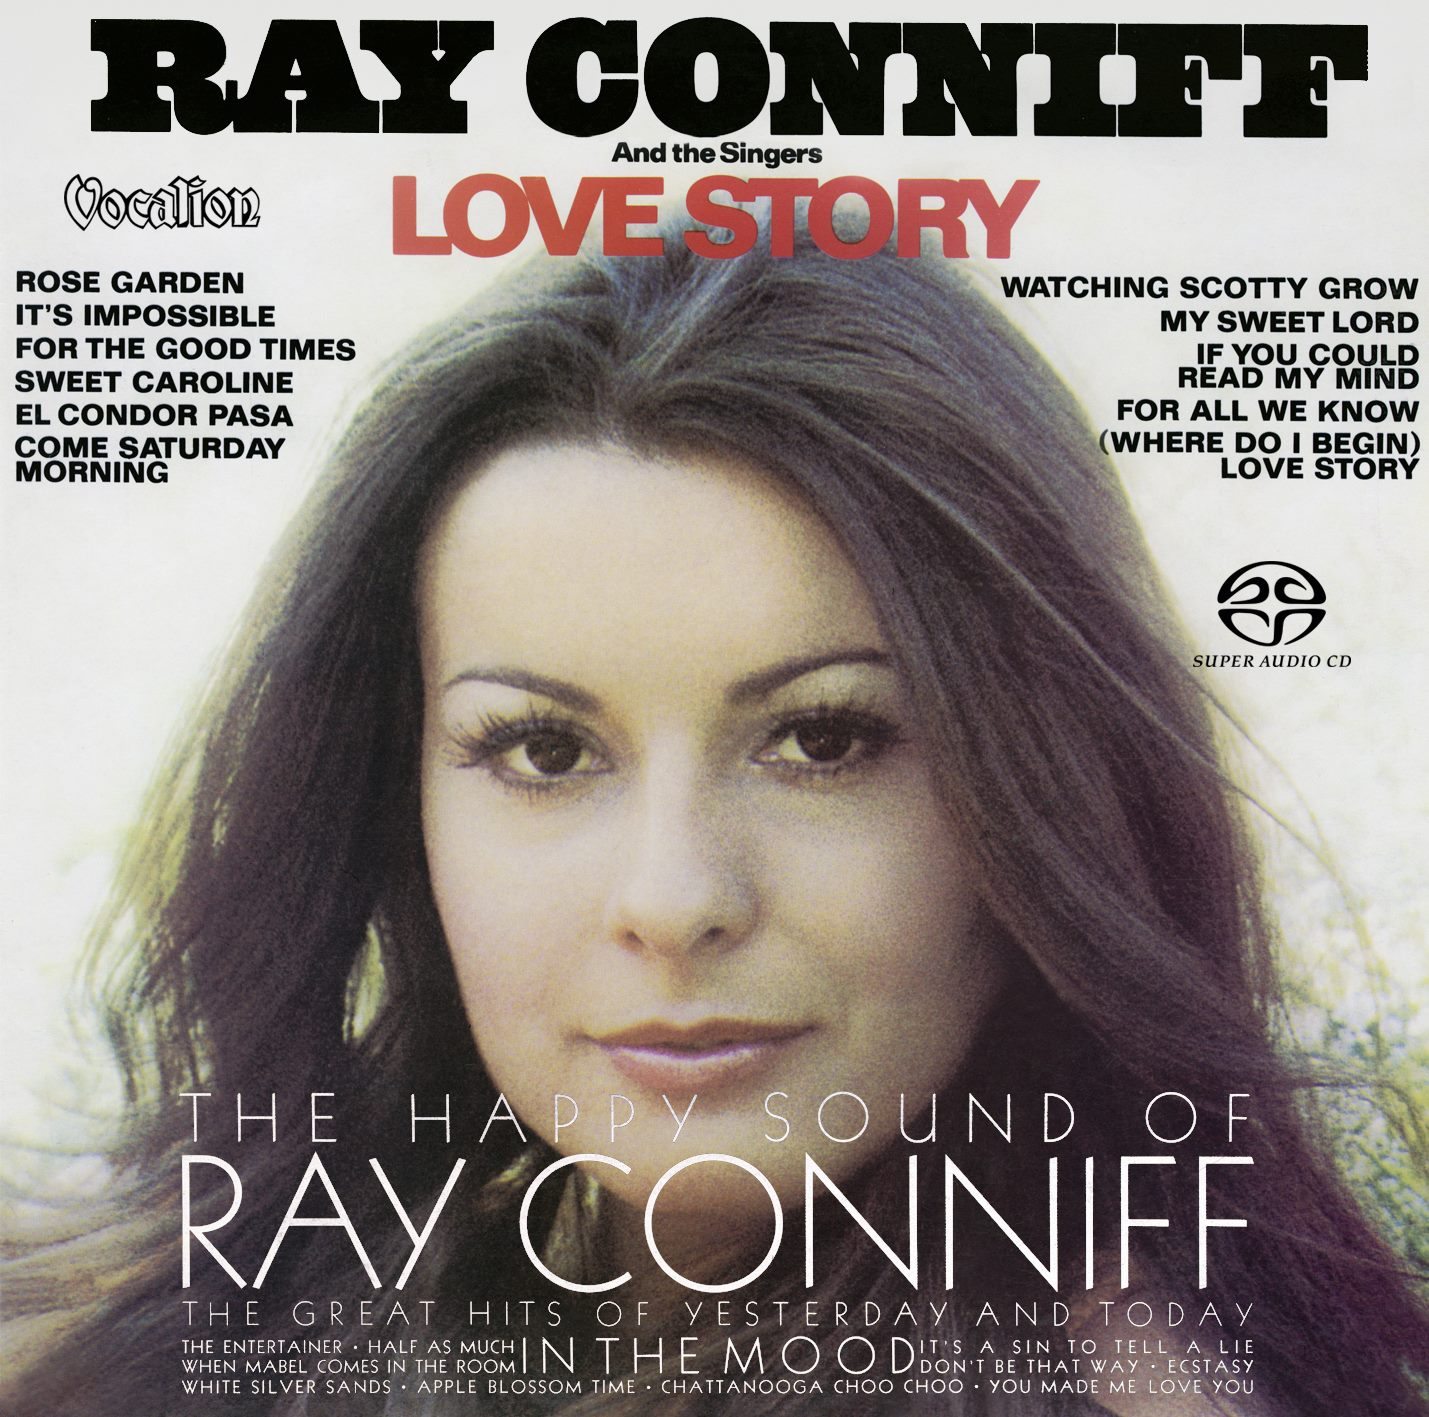 All About Ray Conniff